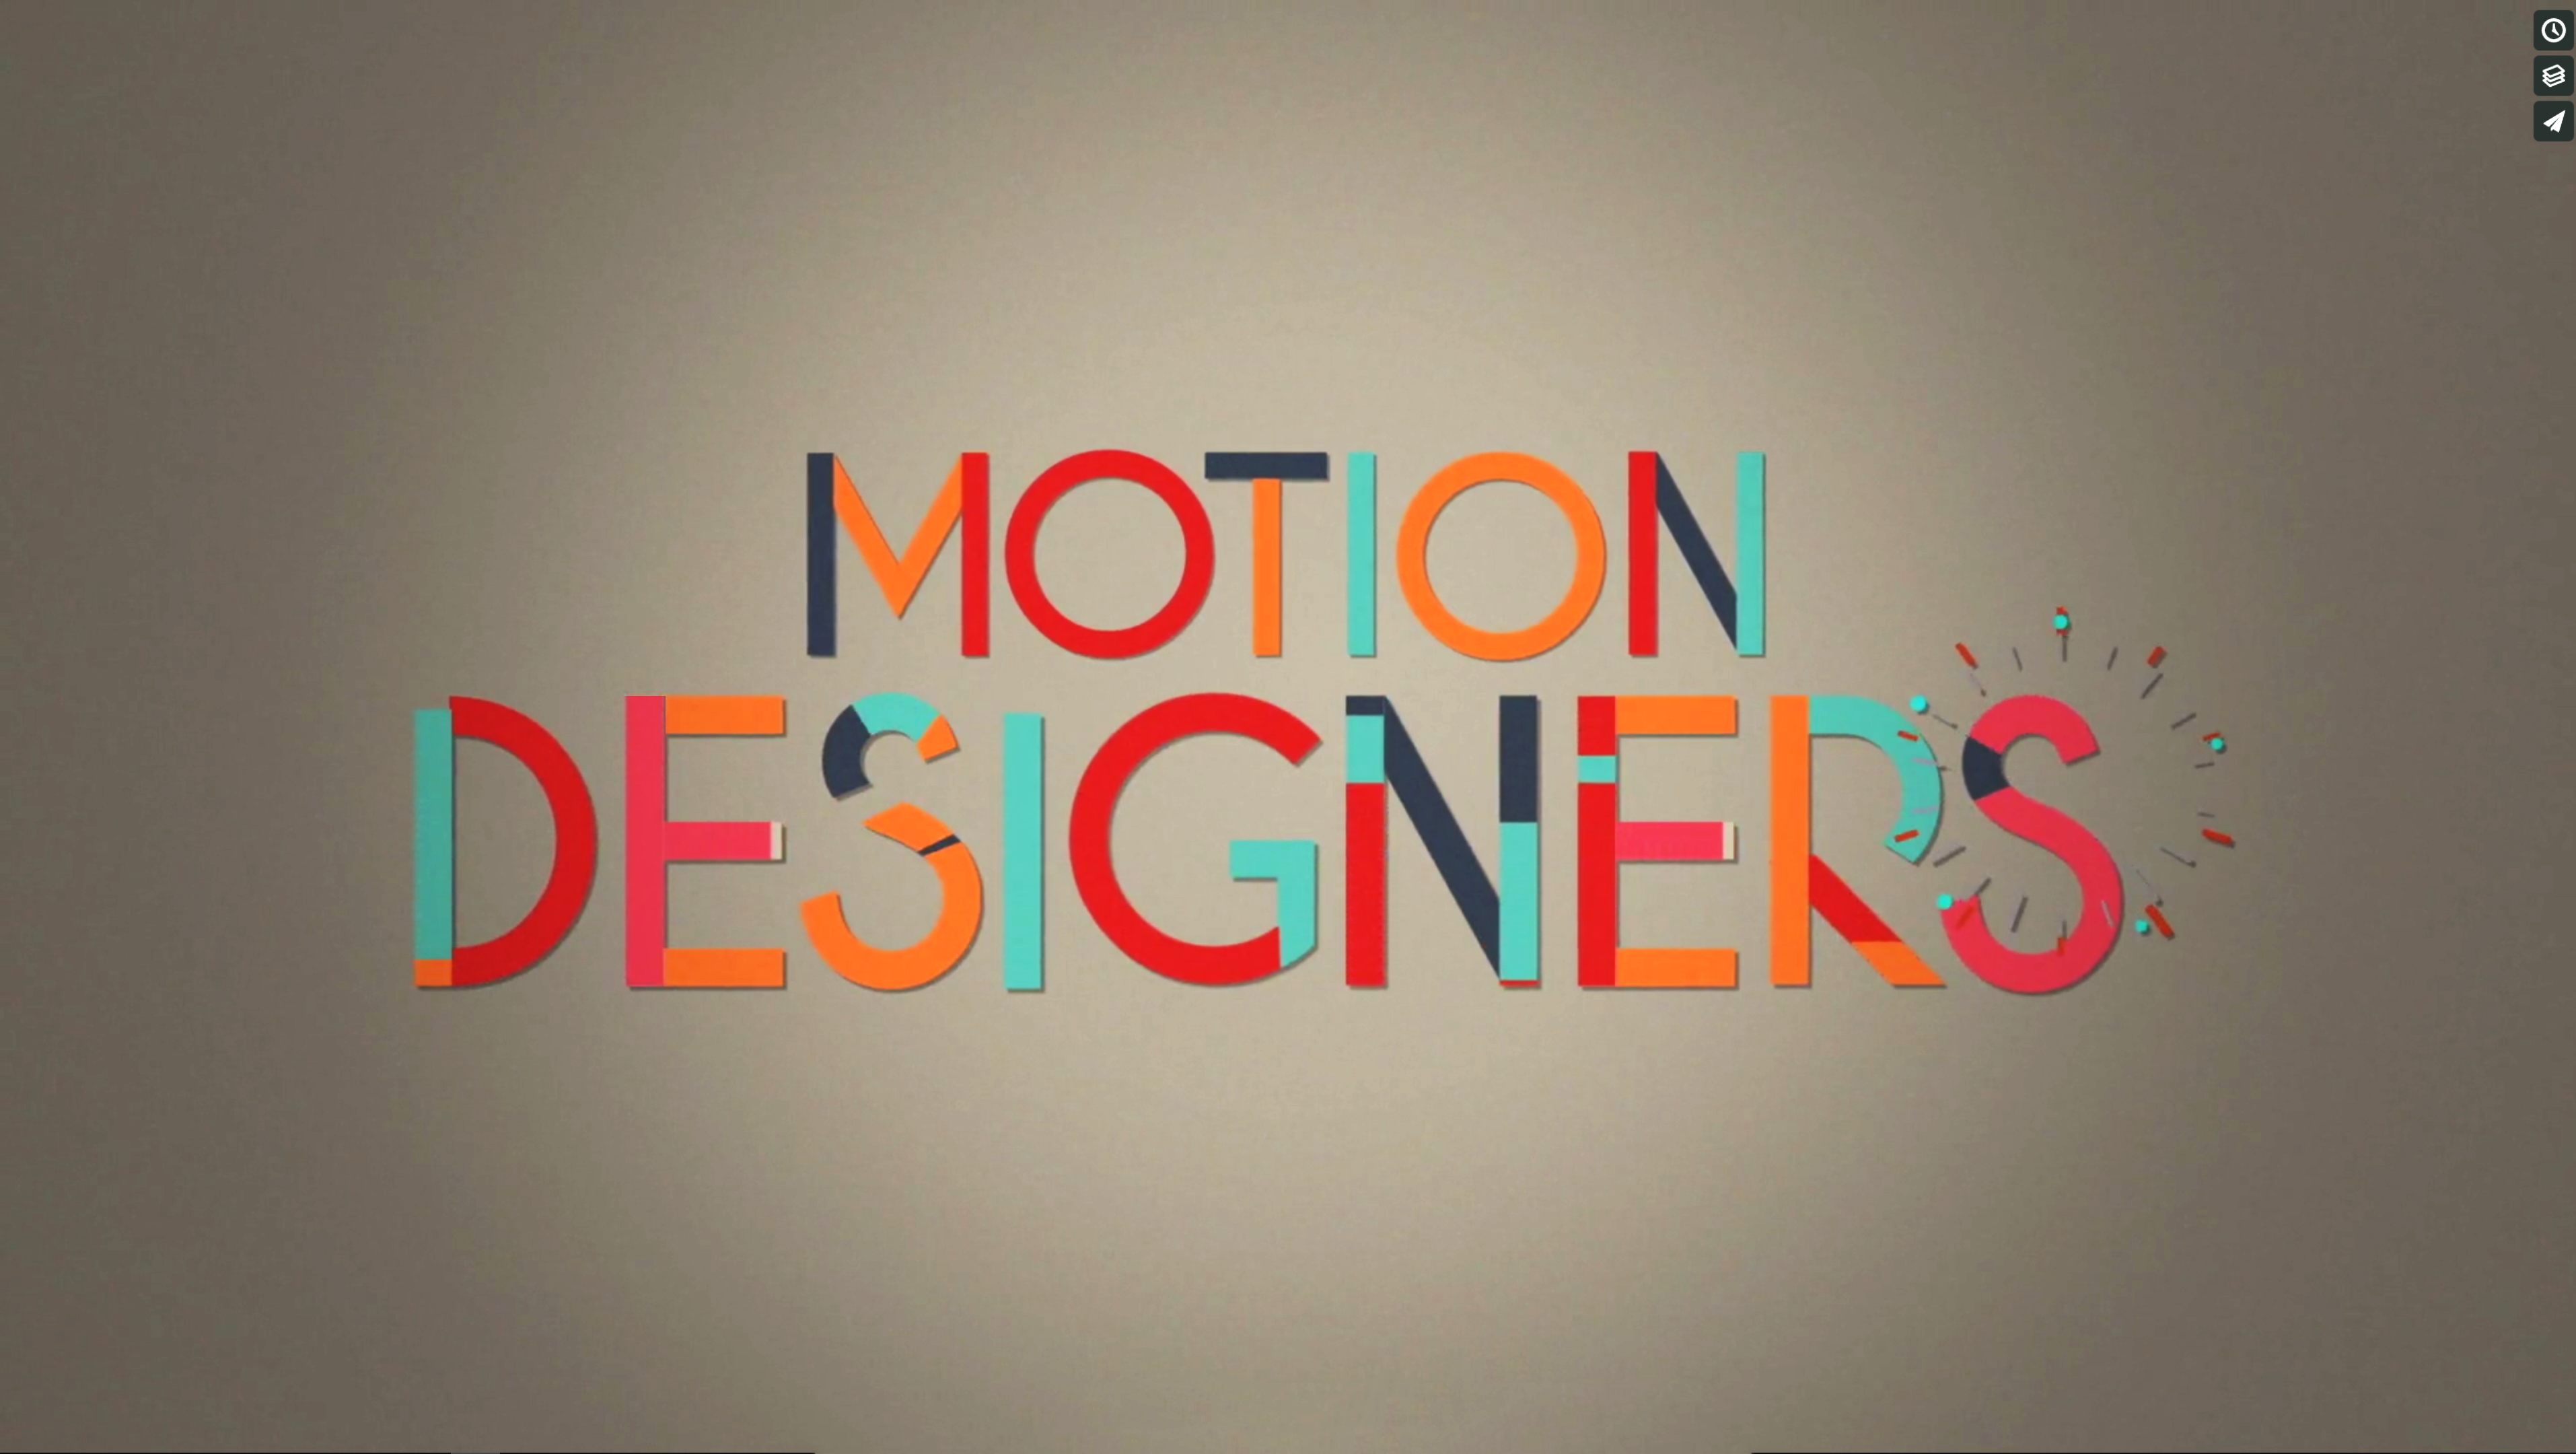 We are Motion Designers